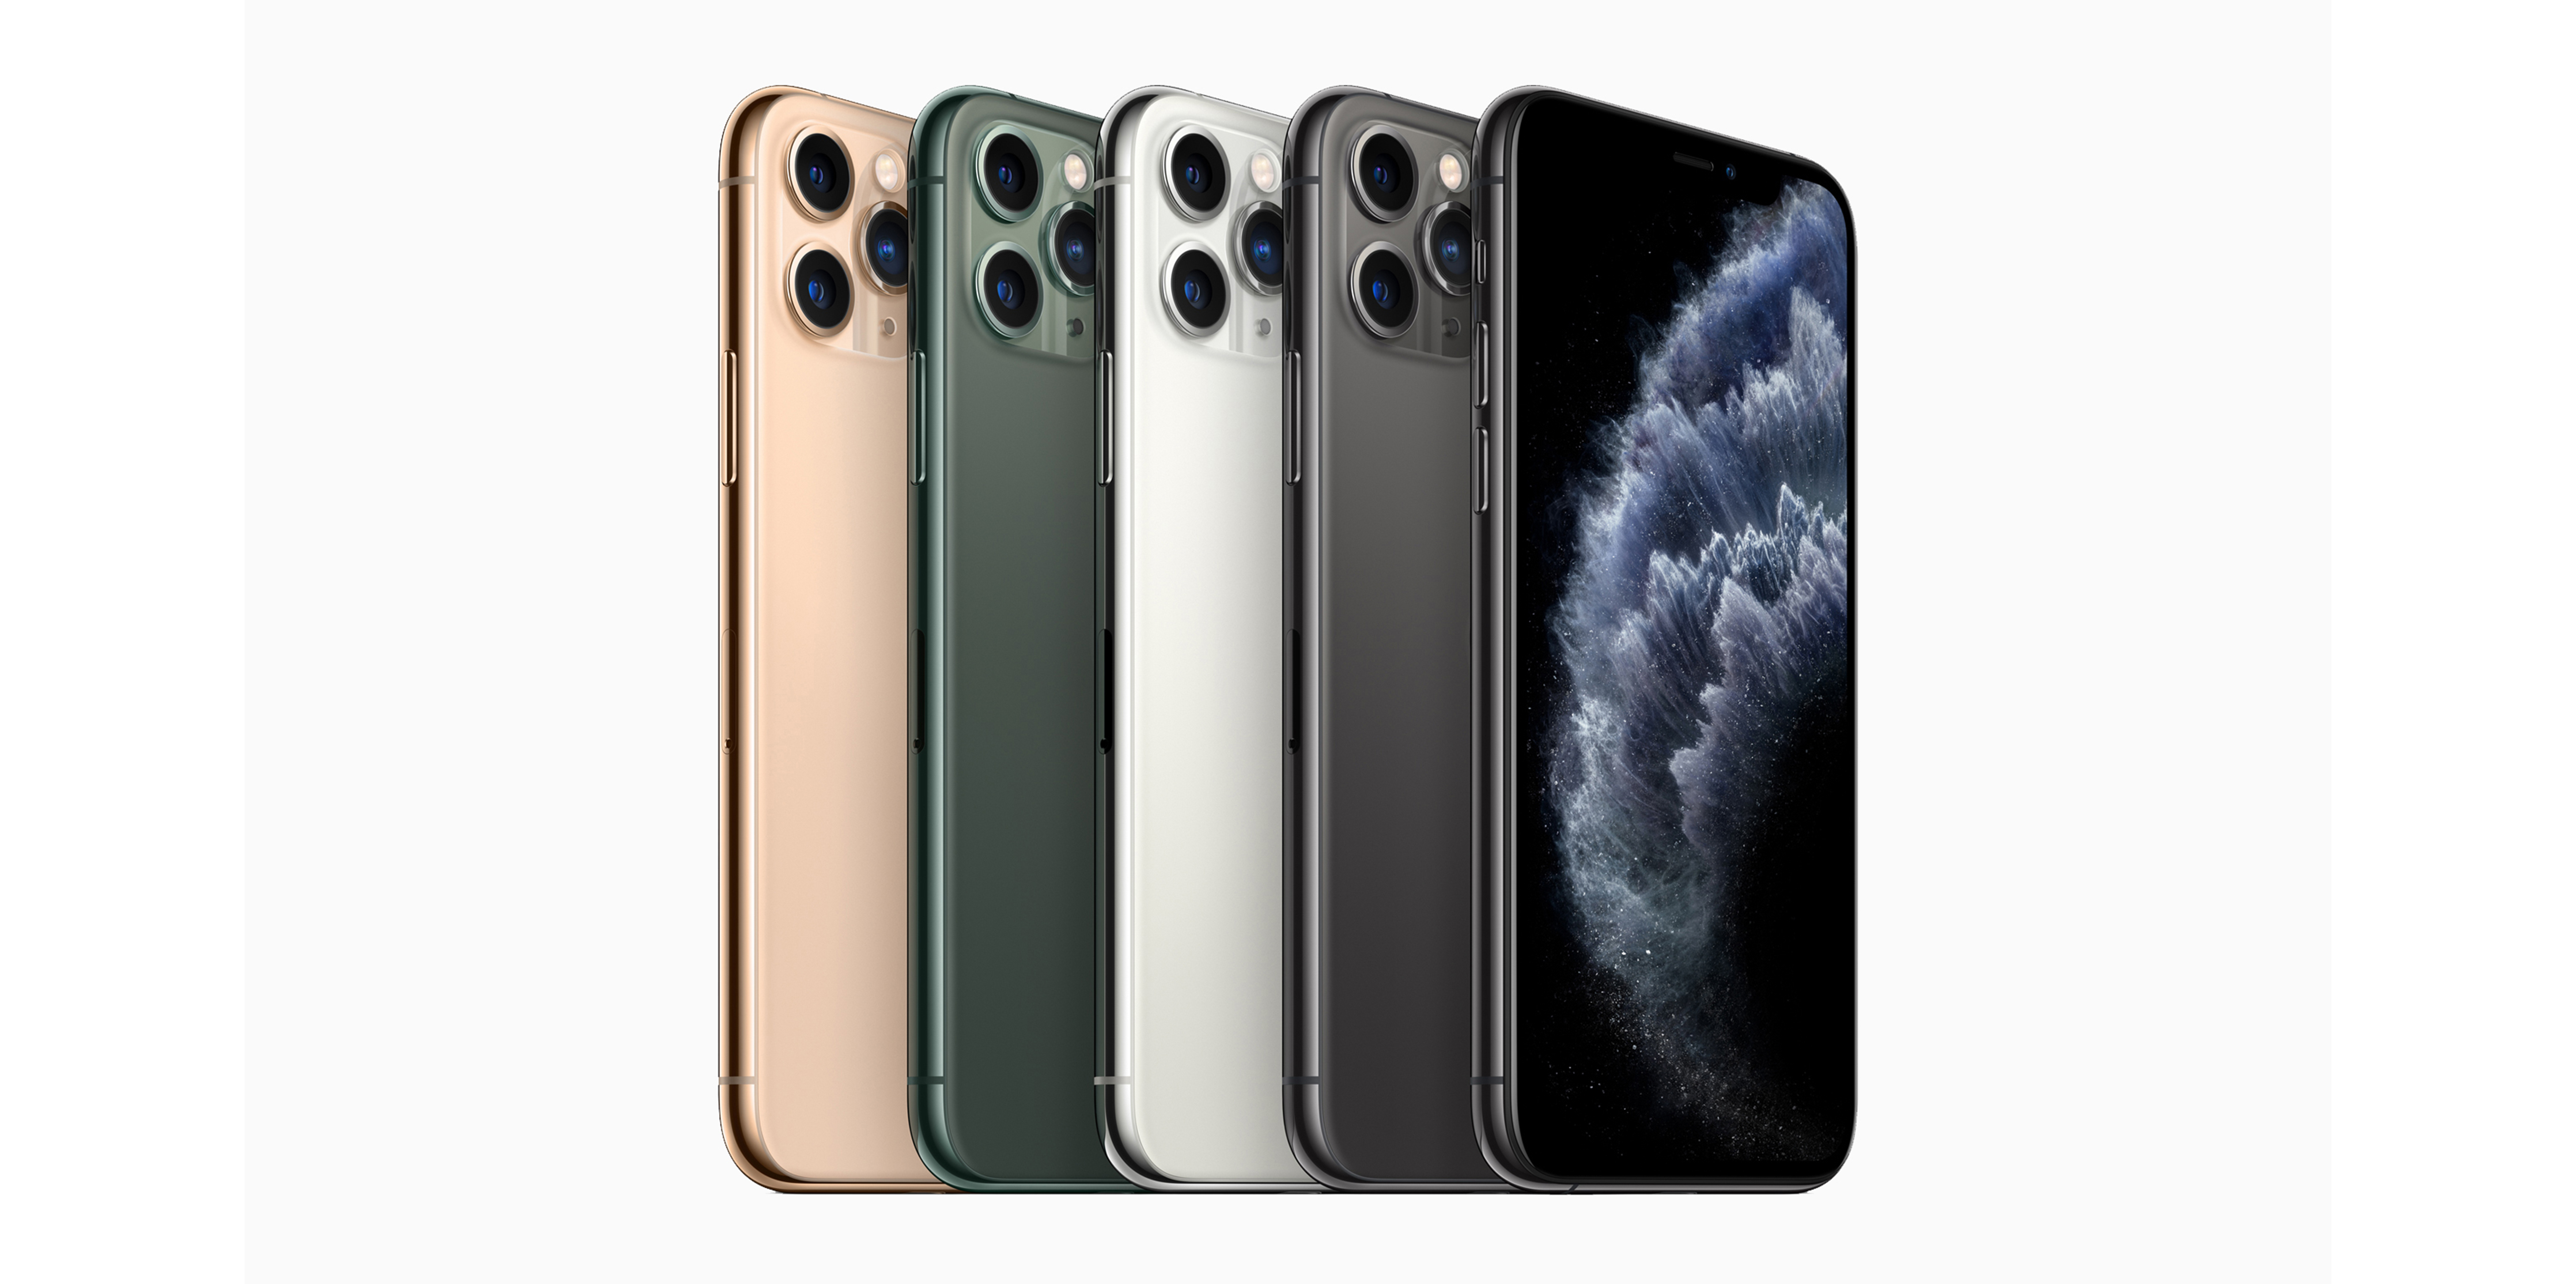 iPhone 11 Pro Max Dual SIM With FaceTime Midnight Green 256GB 4G LTE -HK Specs